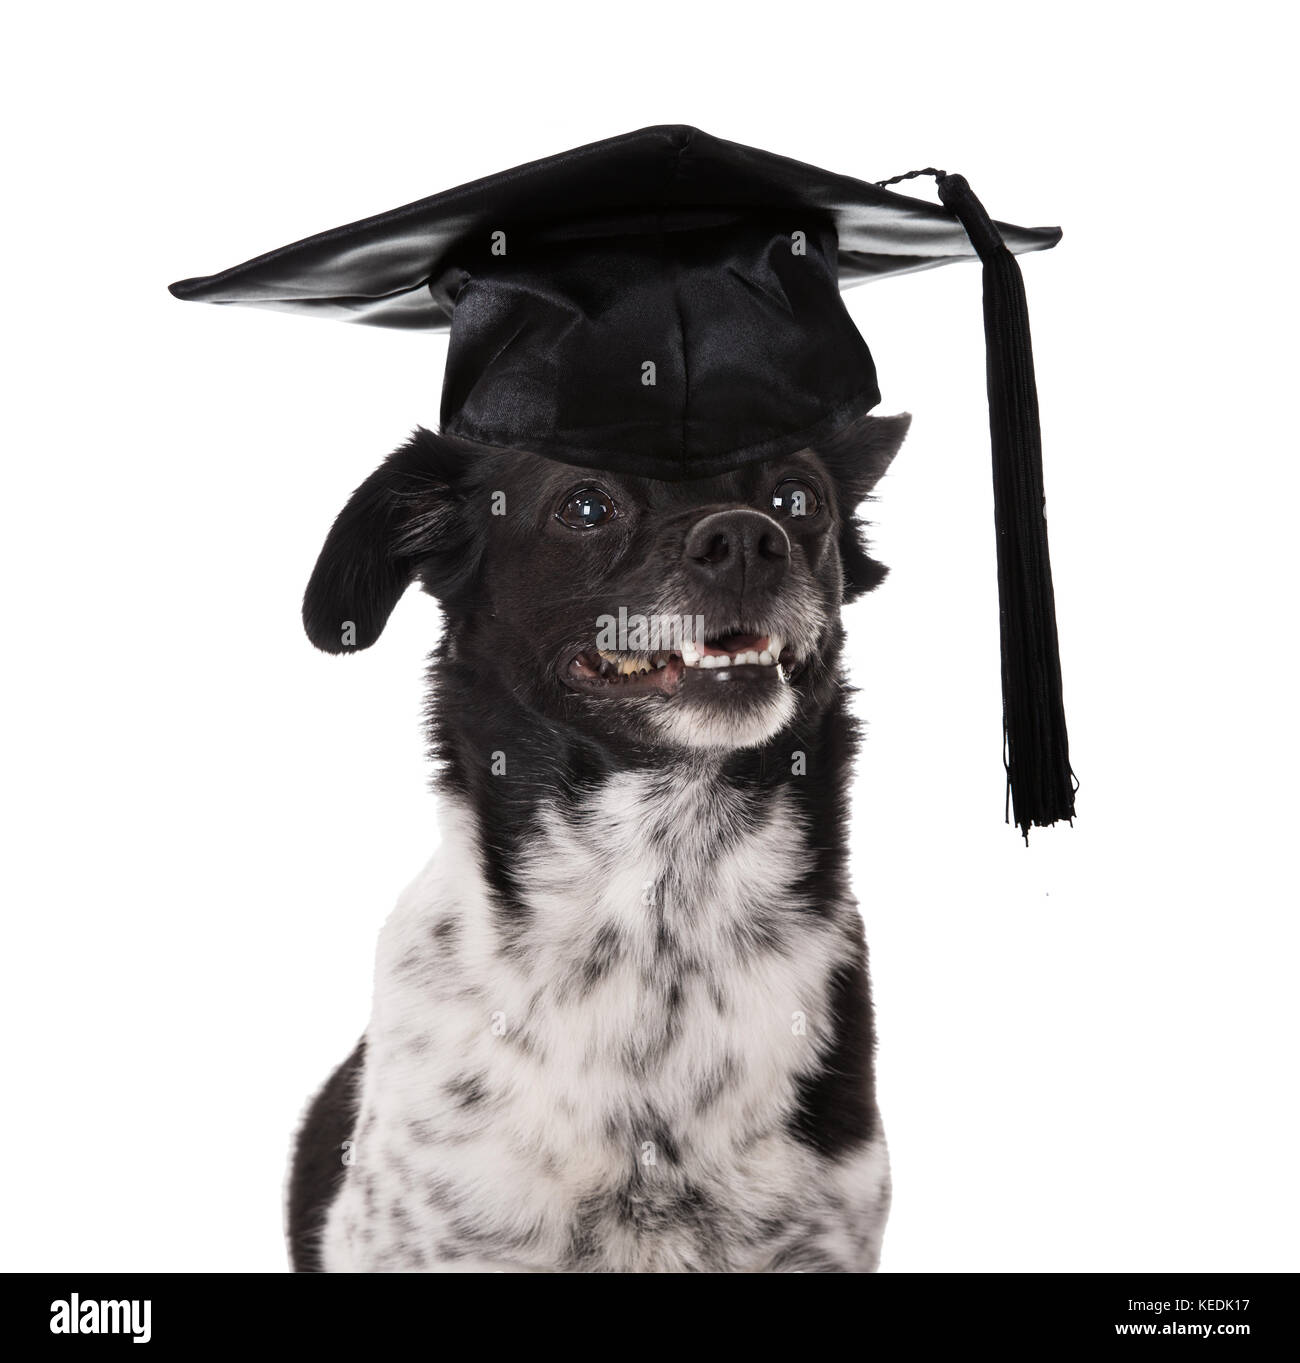 Graduated Dog Wearing Mortar Board Over White Background - Stock Image